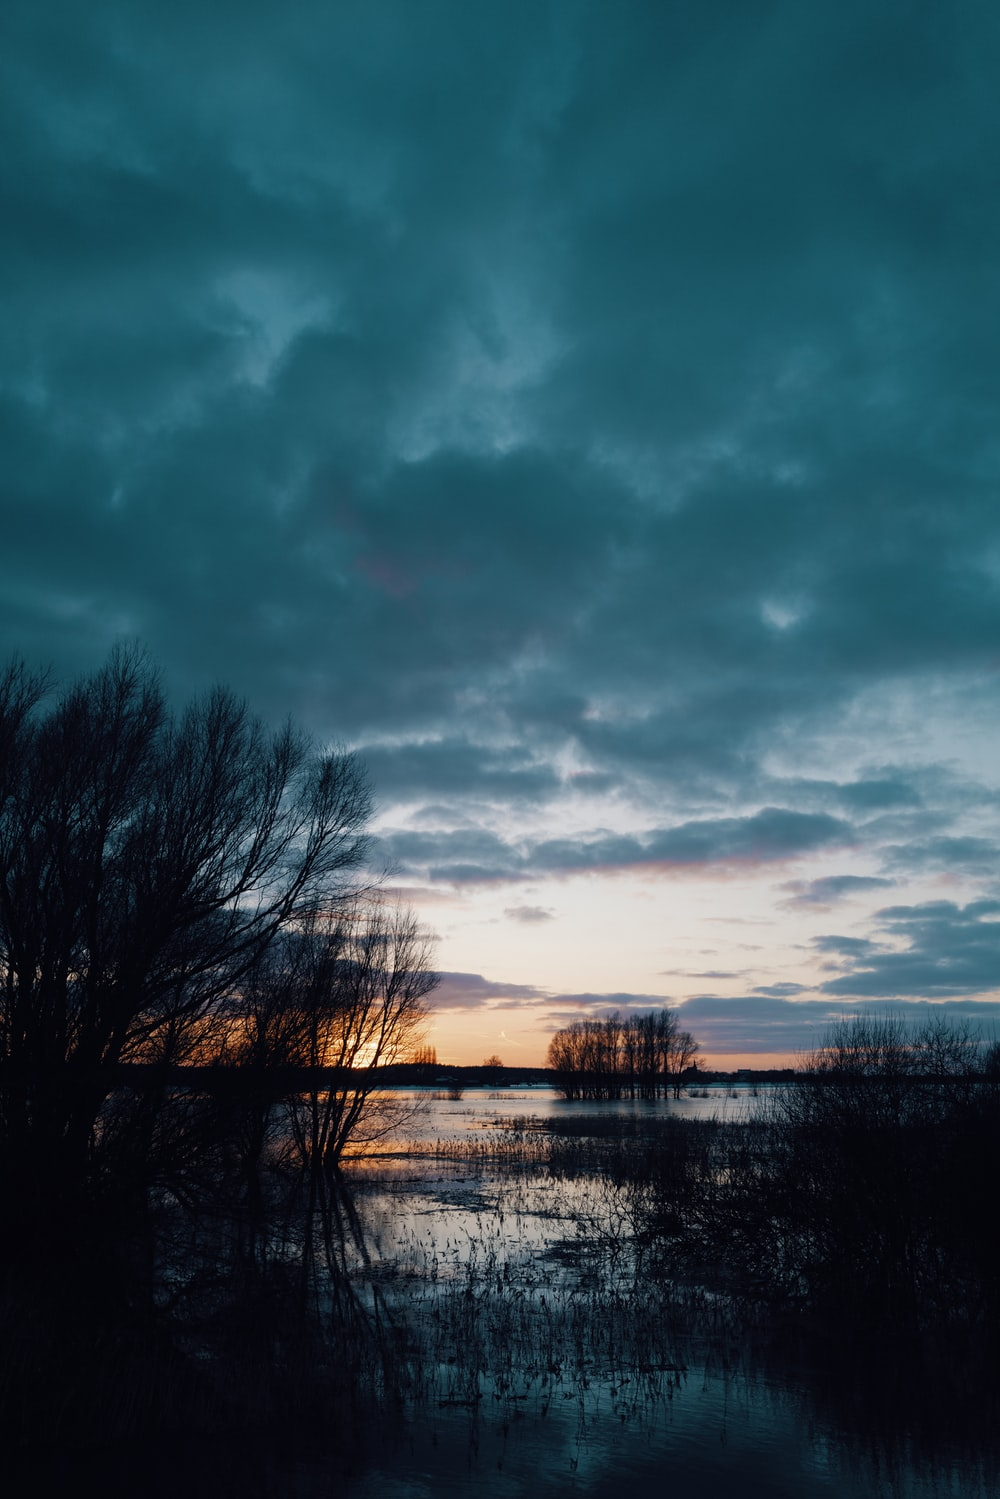 bare trees near body of water under cloudy sky during daytime